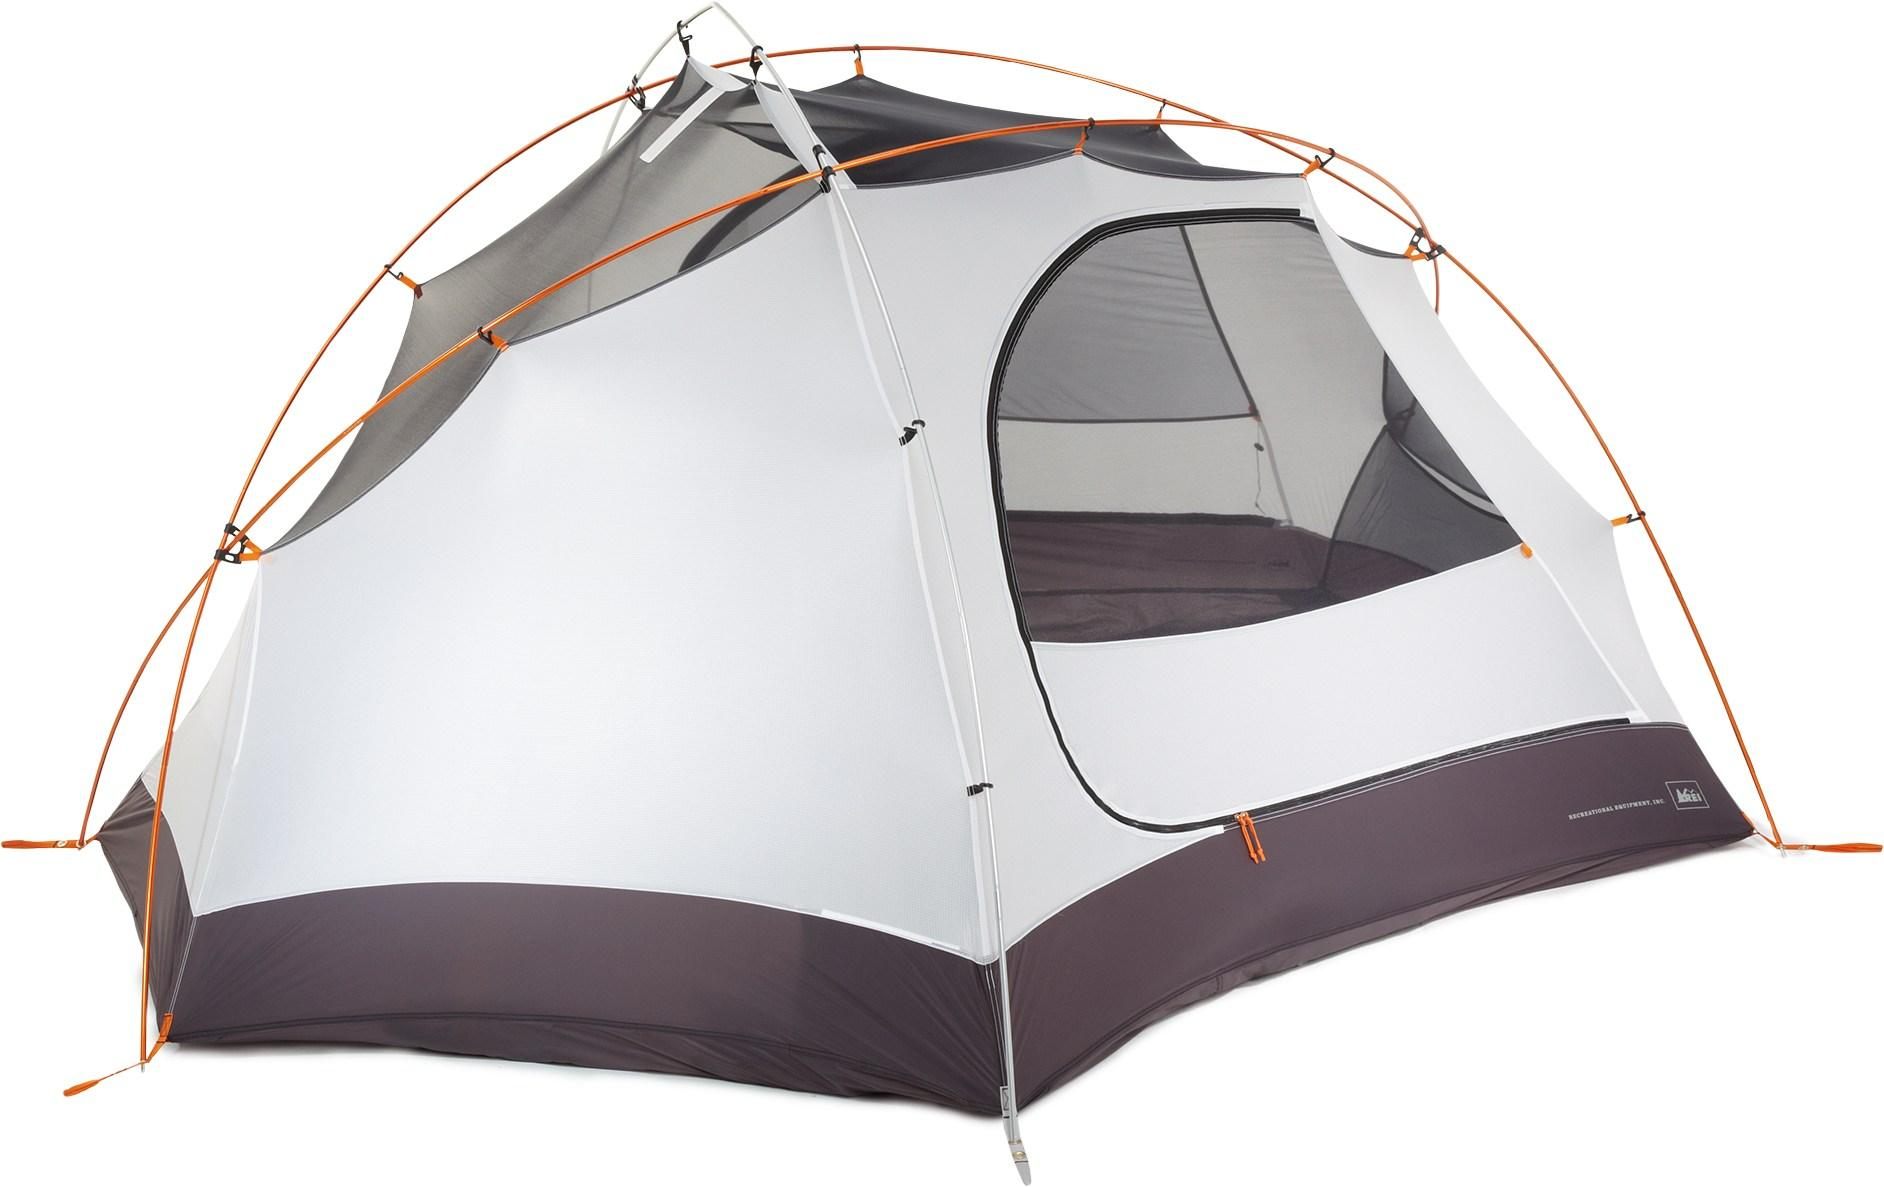 REI Taj 3 Tent - 2012 Special Buy - I was looking at a two man tent when I saw this one. Even if I am alone for now ...  sc 1 st  Pinterest & The 2012 REI Taj 3 Tent is a great tent for 3 people and itu0027s at ...